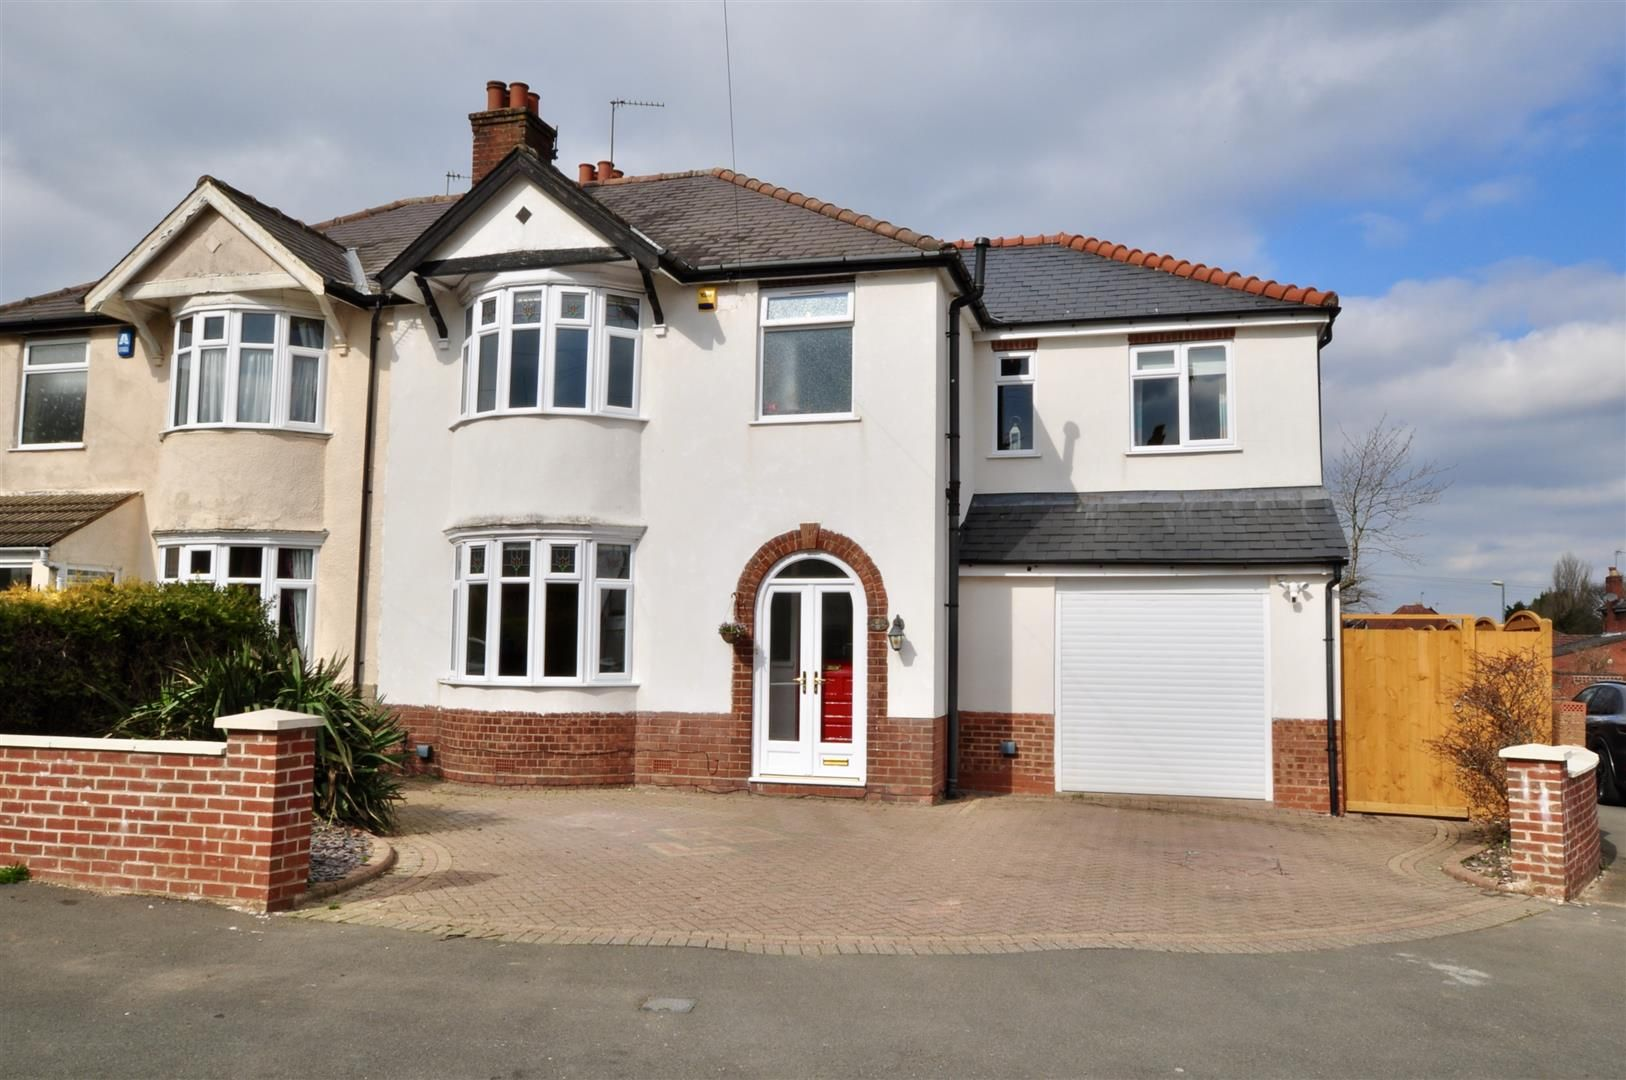 4 bed semi-detached for sale  - Property Image 25